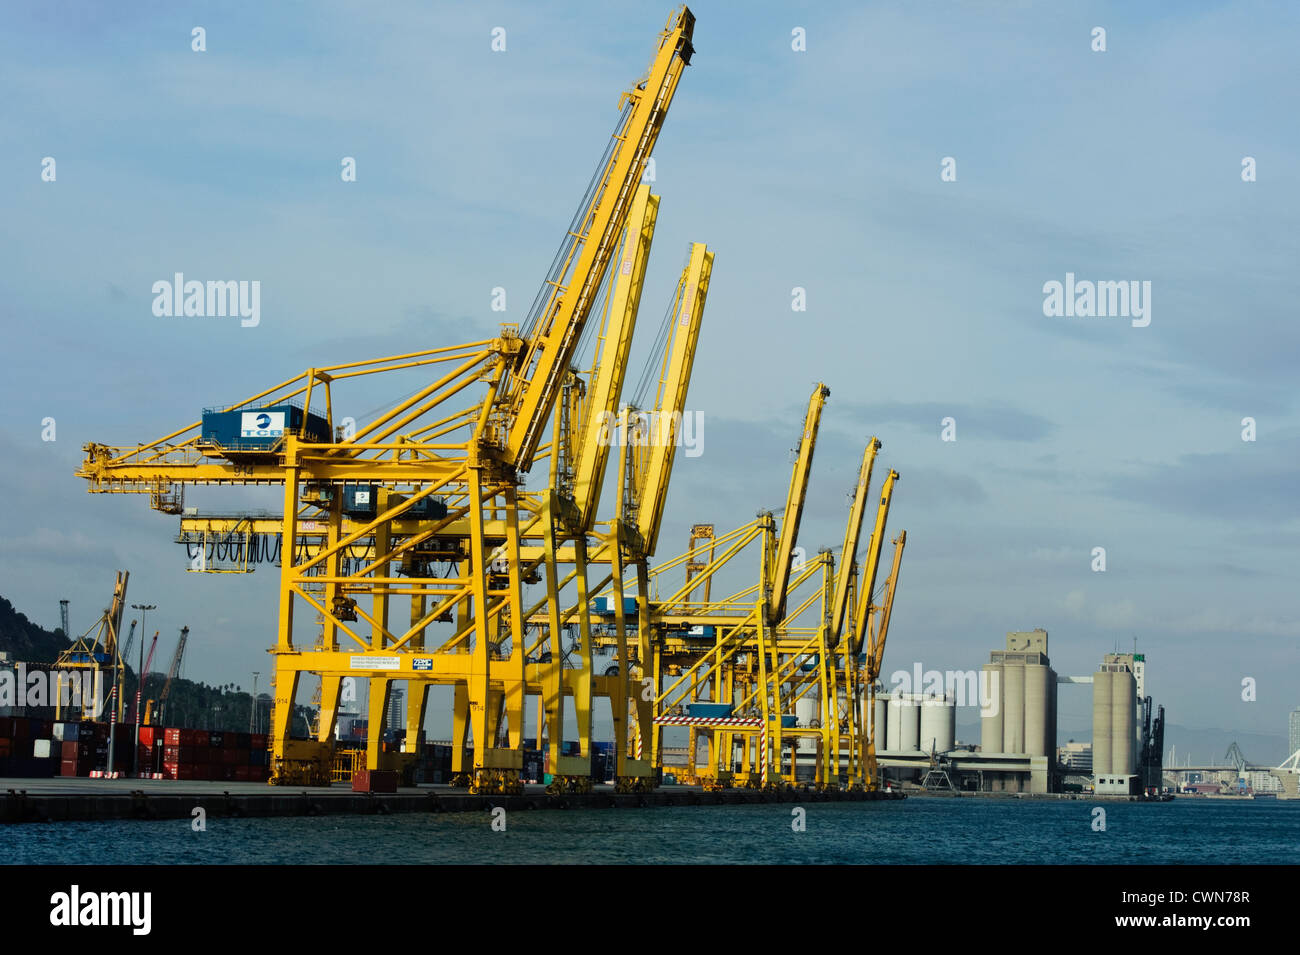 Yellow Rail Mounted Gantry Cranes to handle large cargo in Port Barcelona. - Stock Image